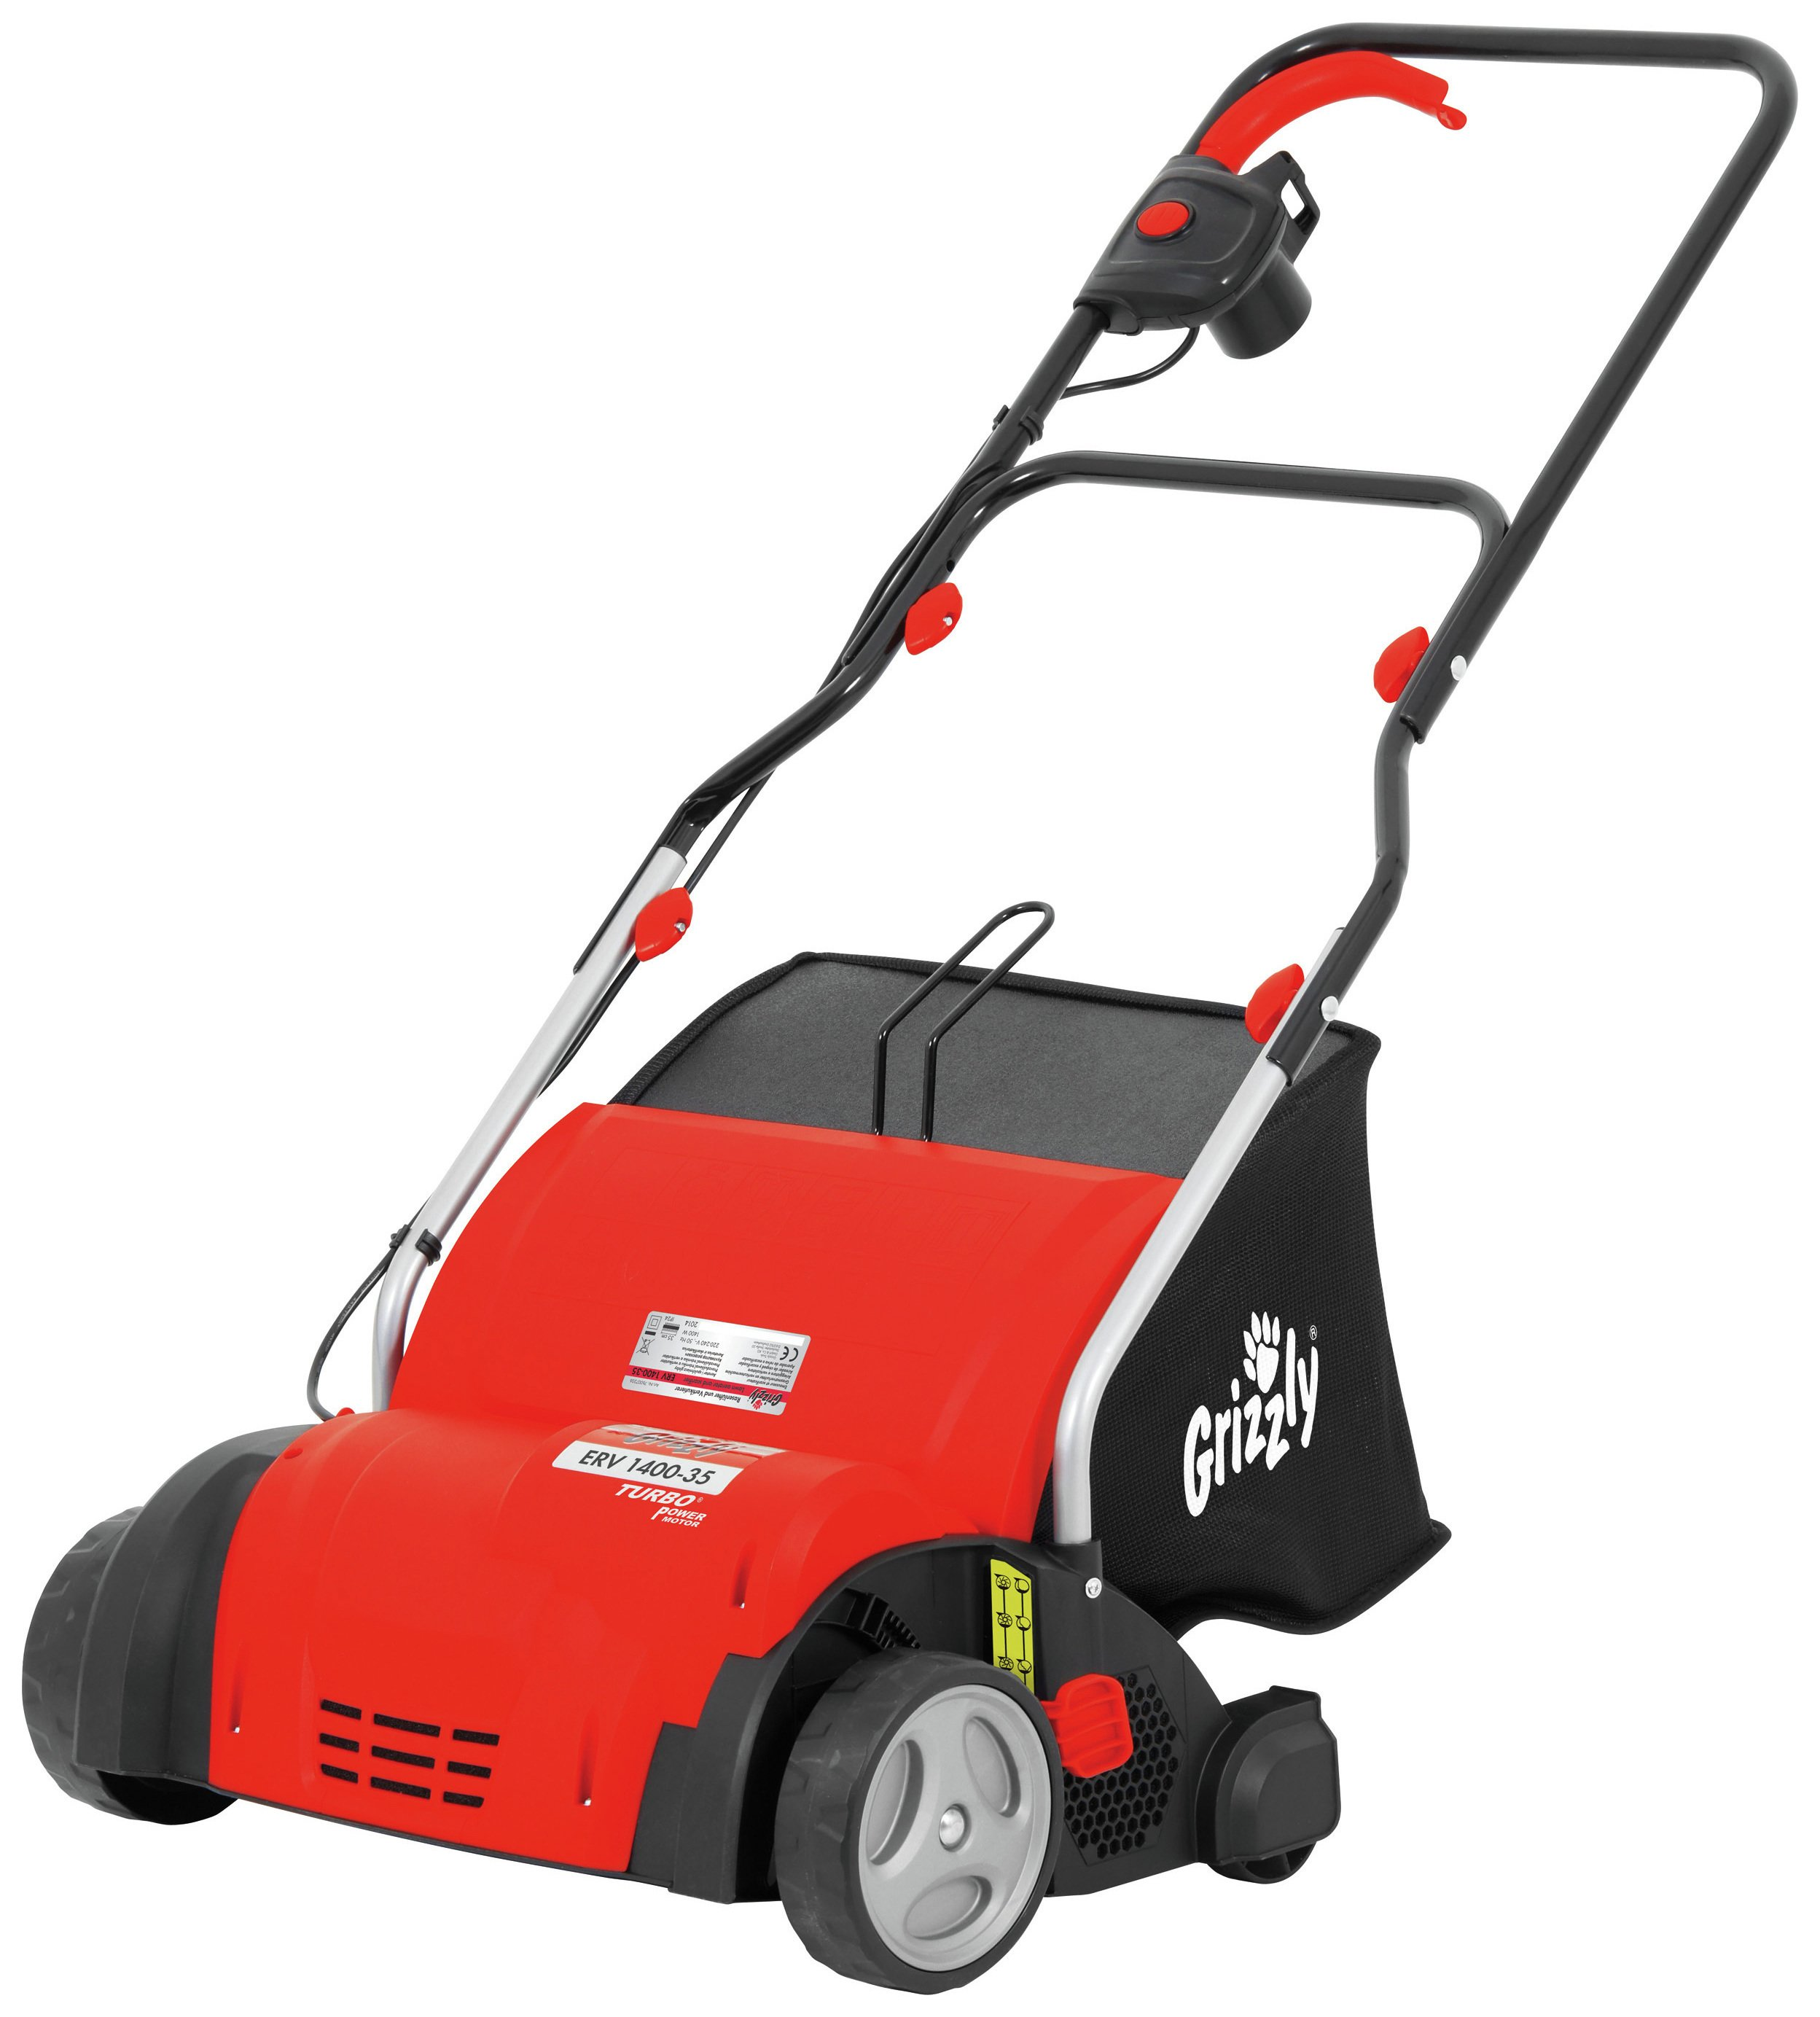 Image of Grizzly Tools 1400W Corded Lawn Scarifier and Aerate.